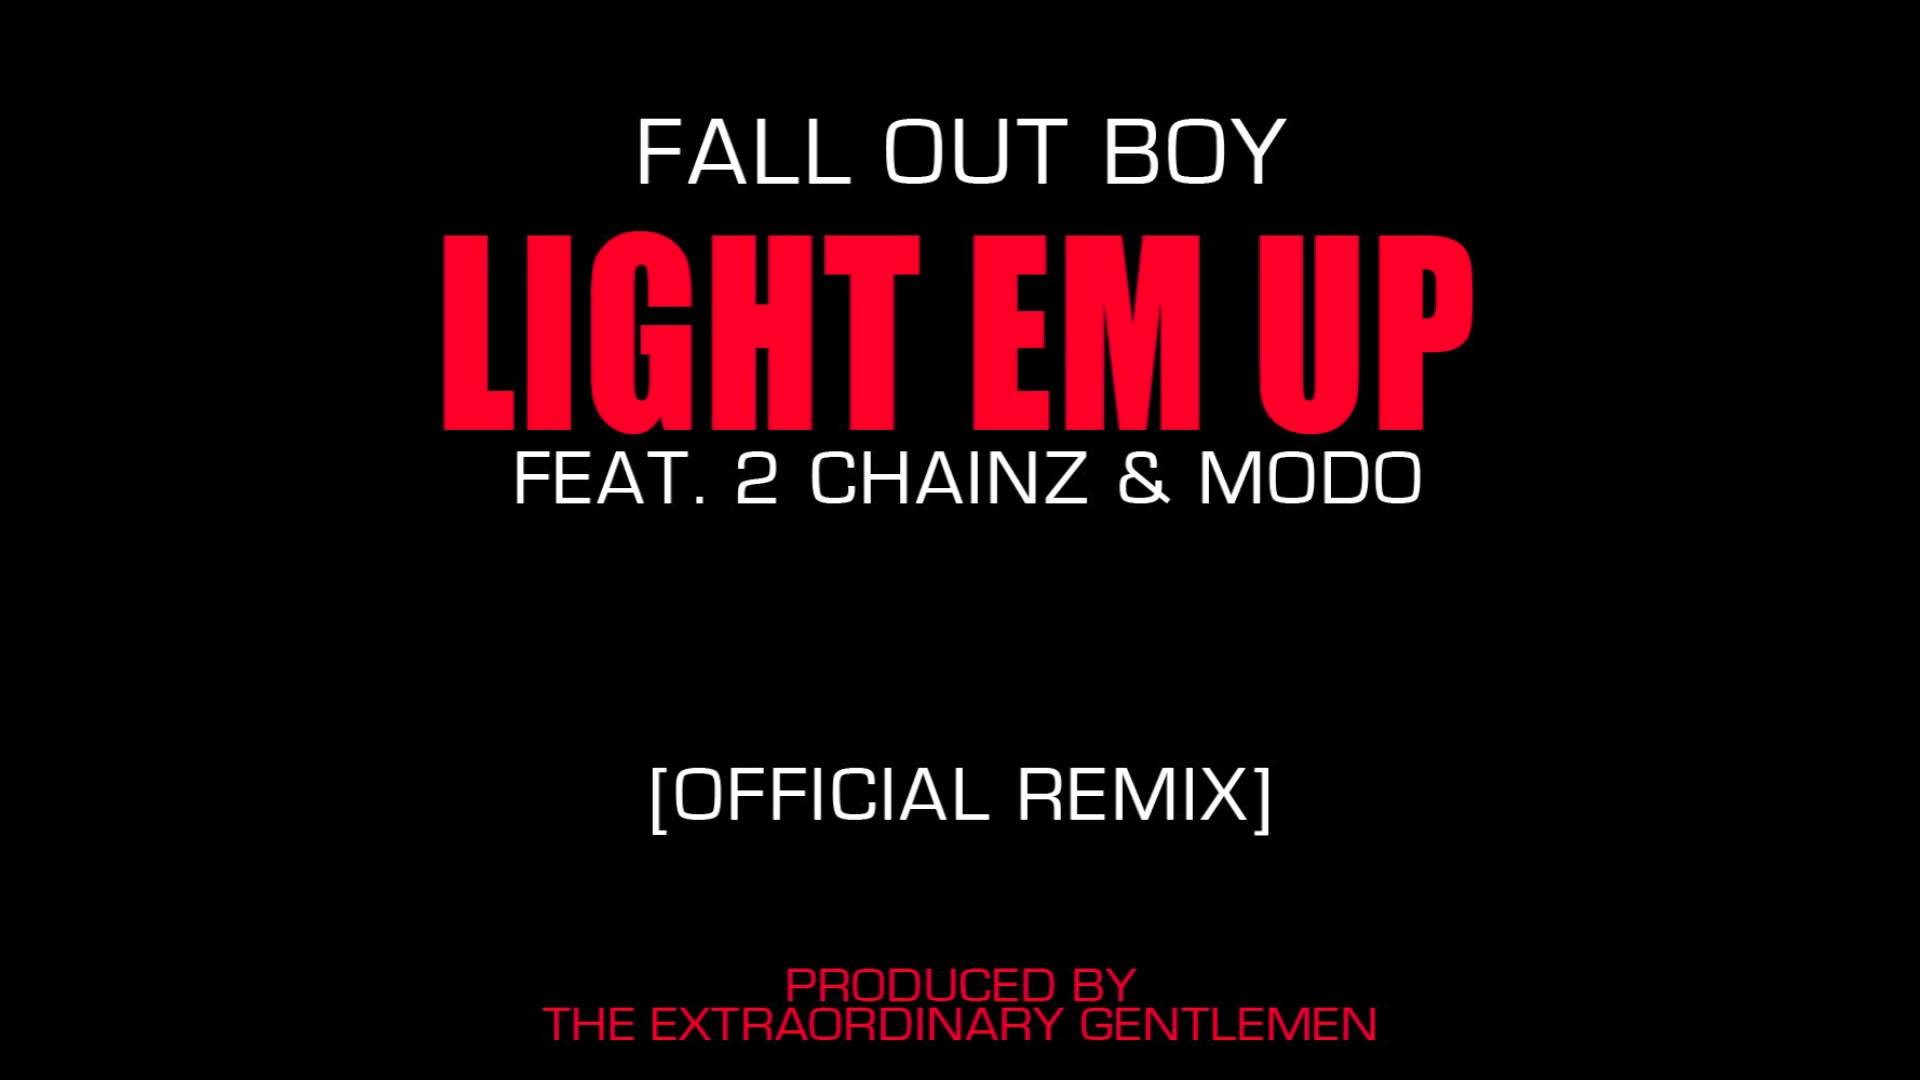 Fall Out Boy – Light Em Up (Feat. 2 Chainz & Modo) [Official Remix] –  YouTube